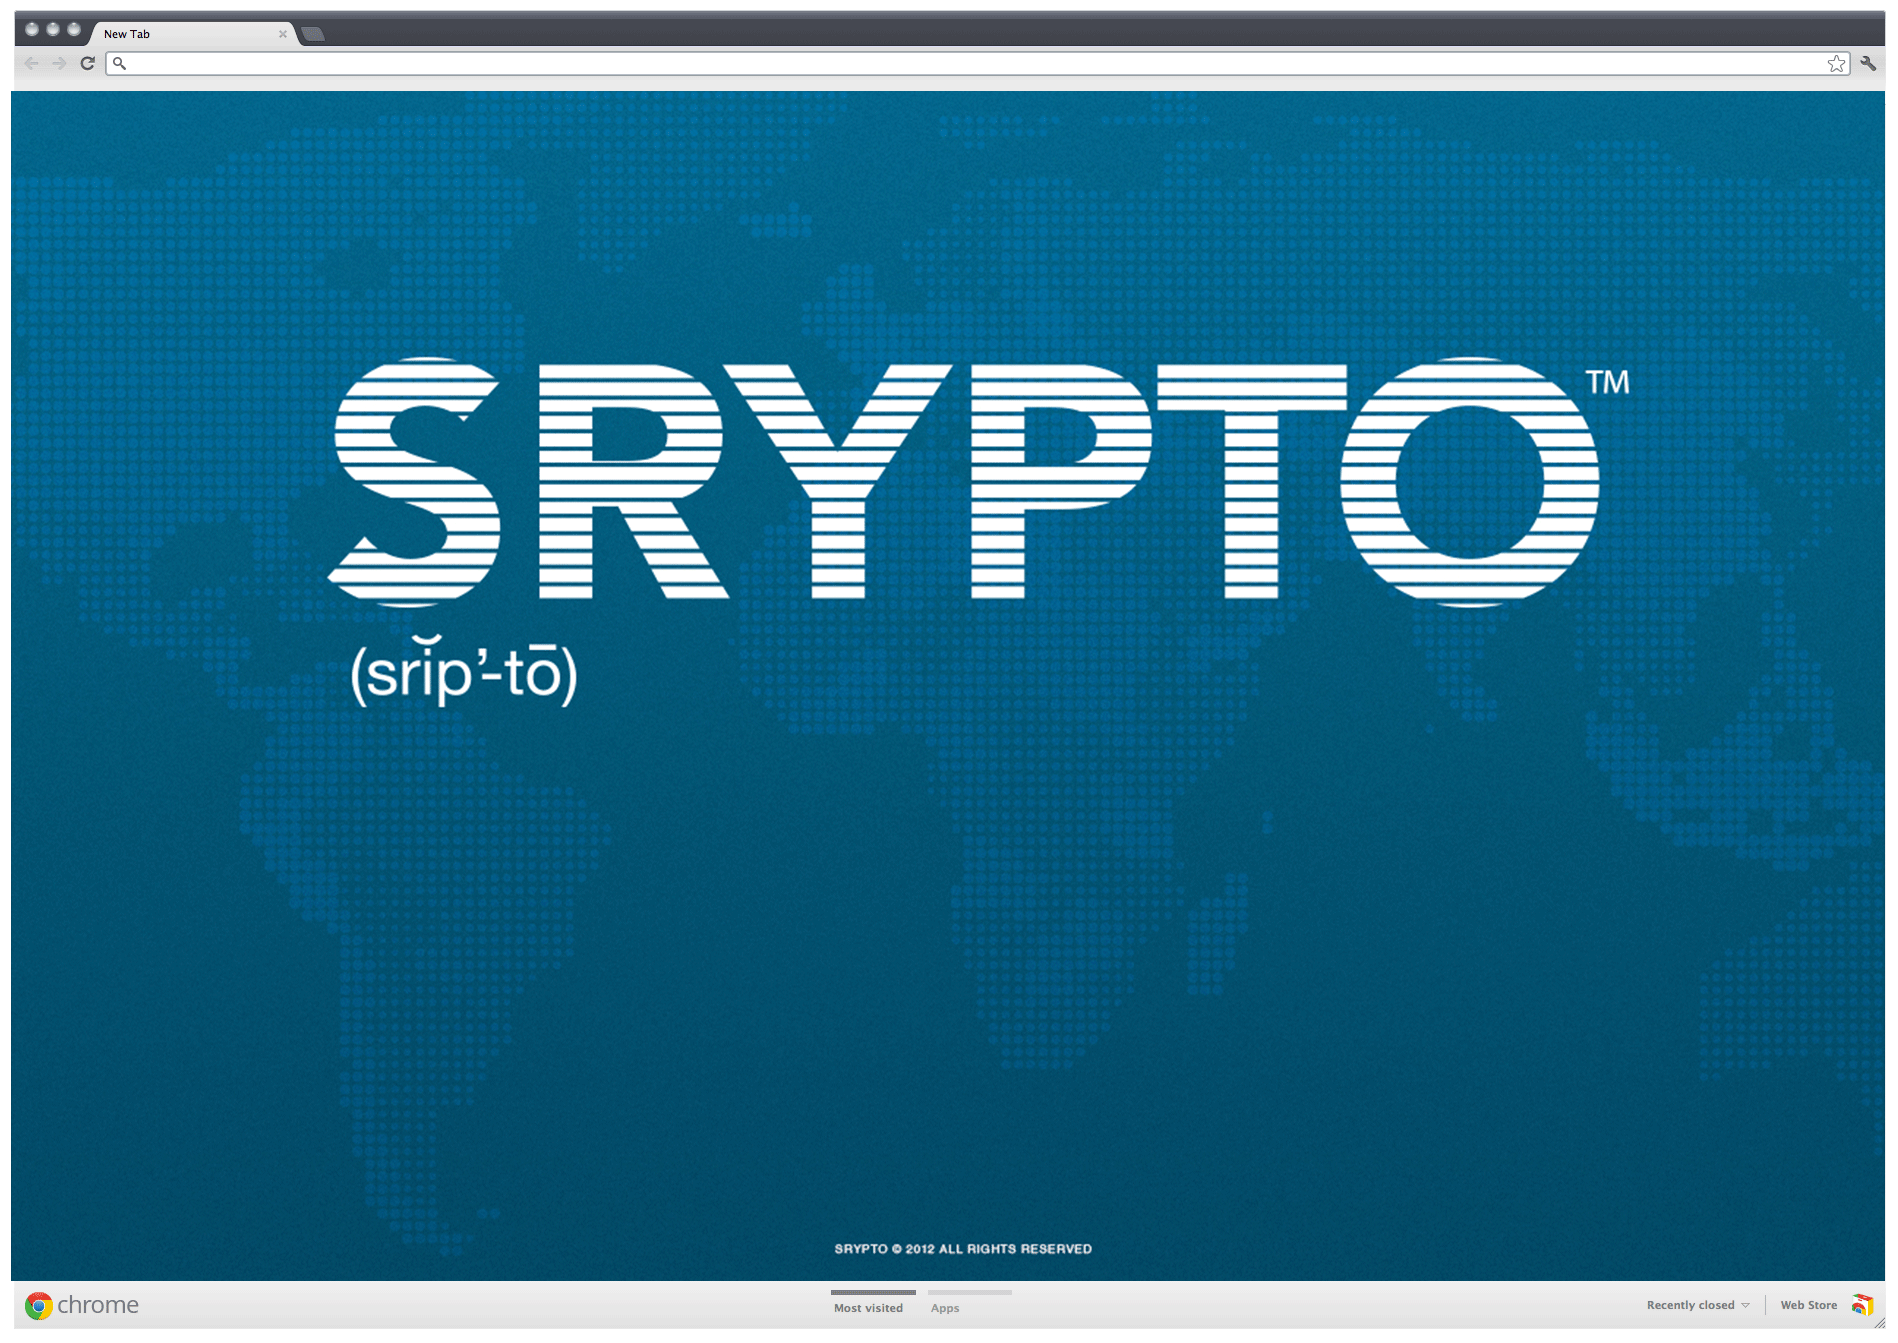 Srypto website landing page